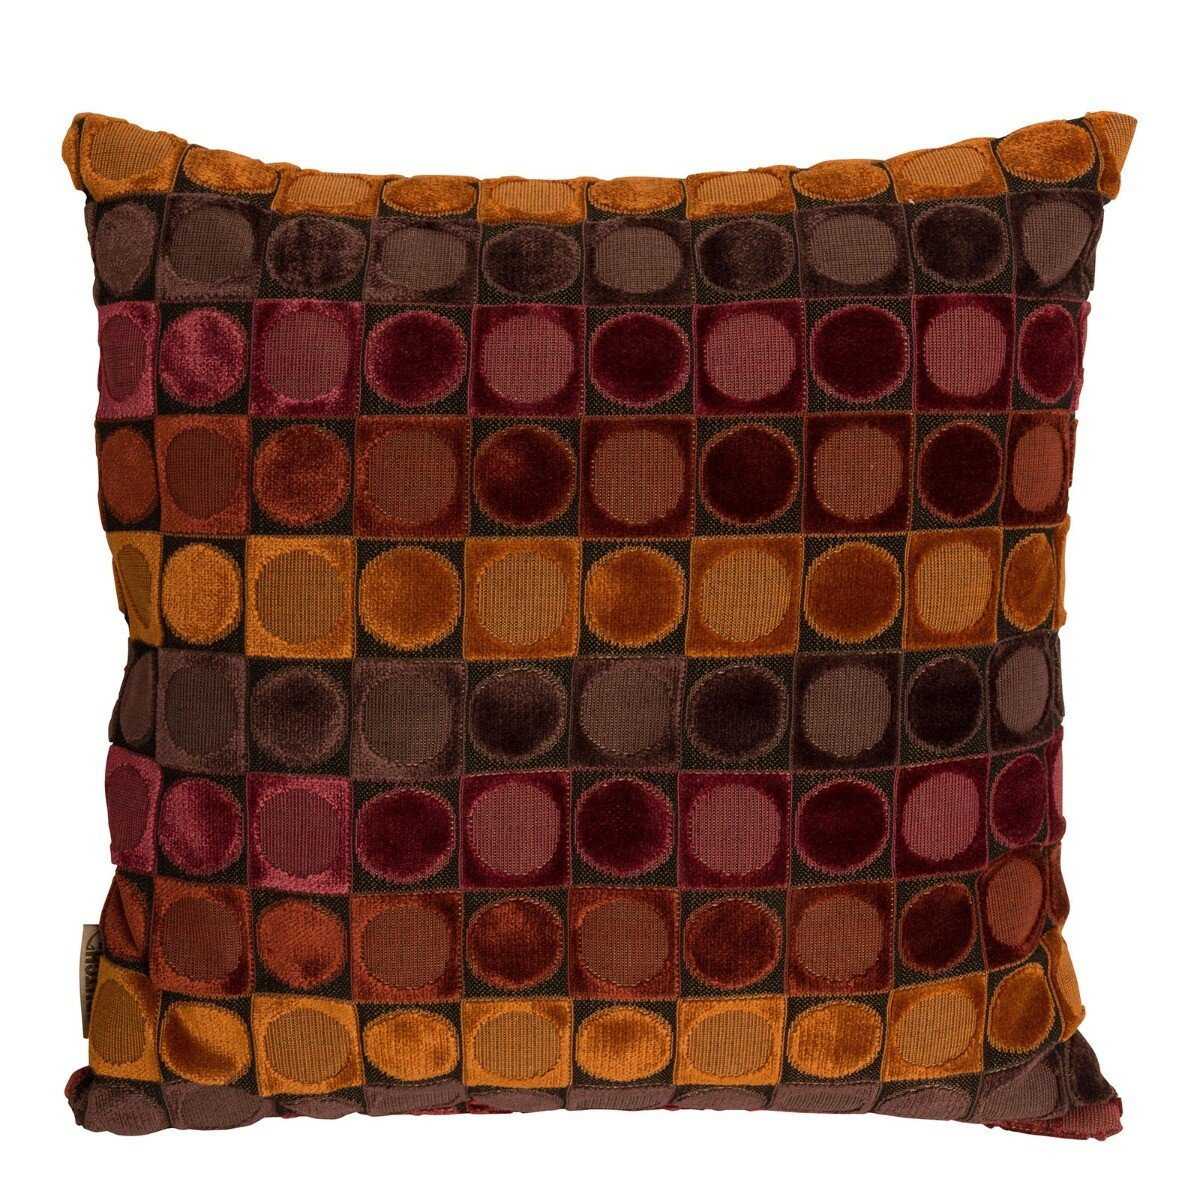 Dutchbone Ottava Kussen 45 x 45 cm Red-Orange